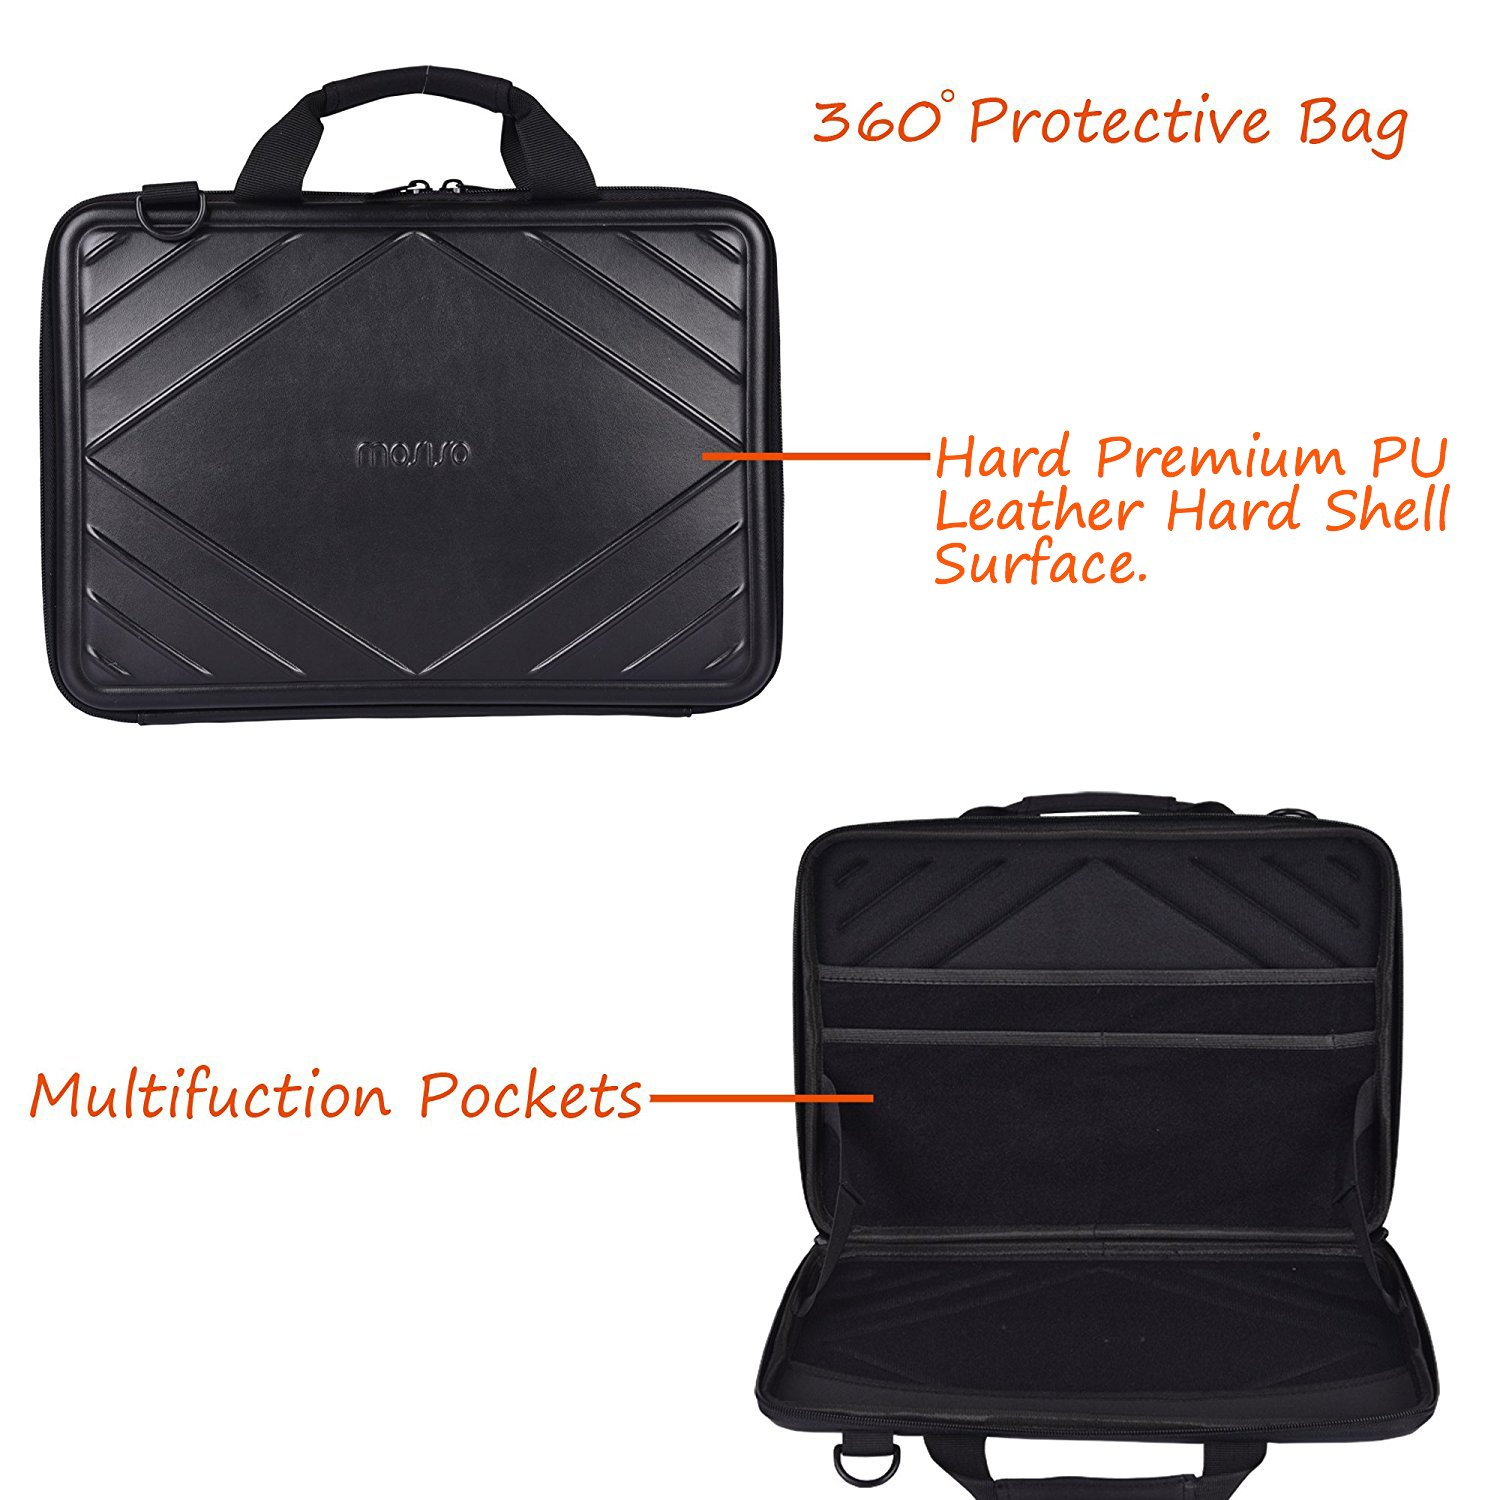 MOSISO EVA Hard Shell Protective Laptop Shoulder Bag Compatible 13-13.3 Inch MacBook Pro, MacBook Air, Notebook, Portable Universal Shockproof ...